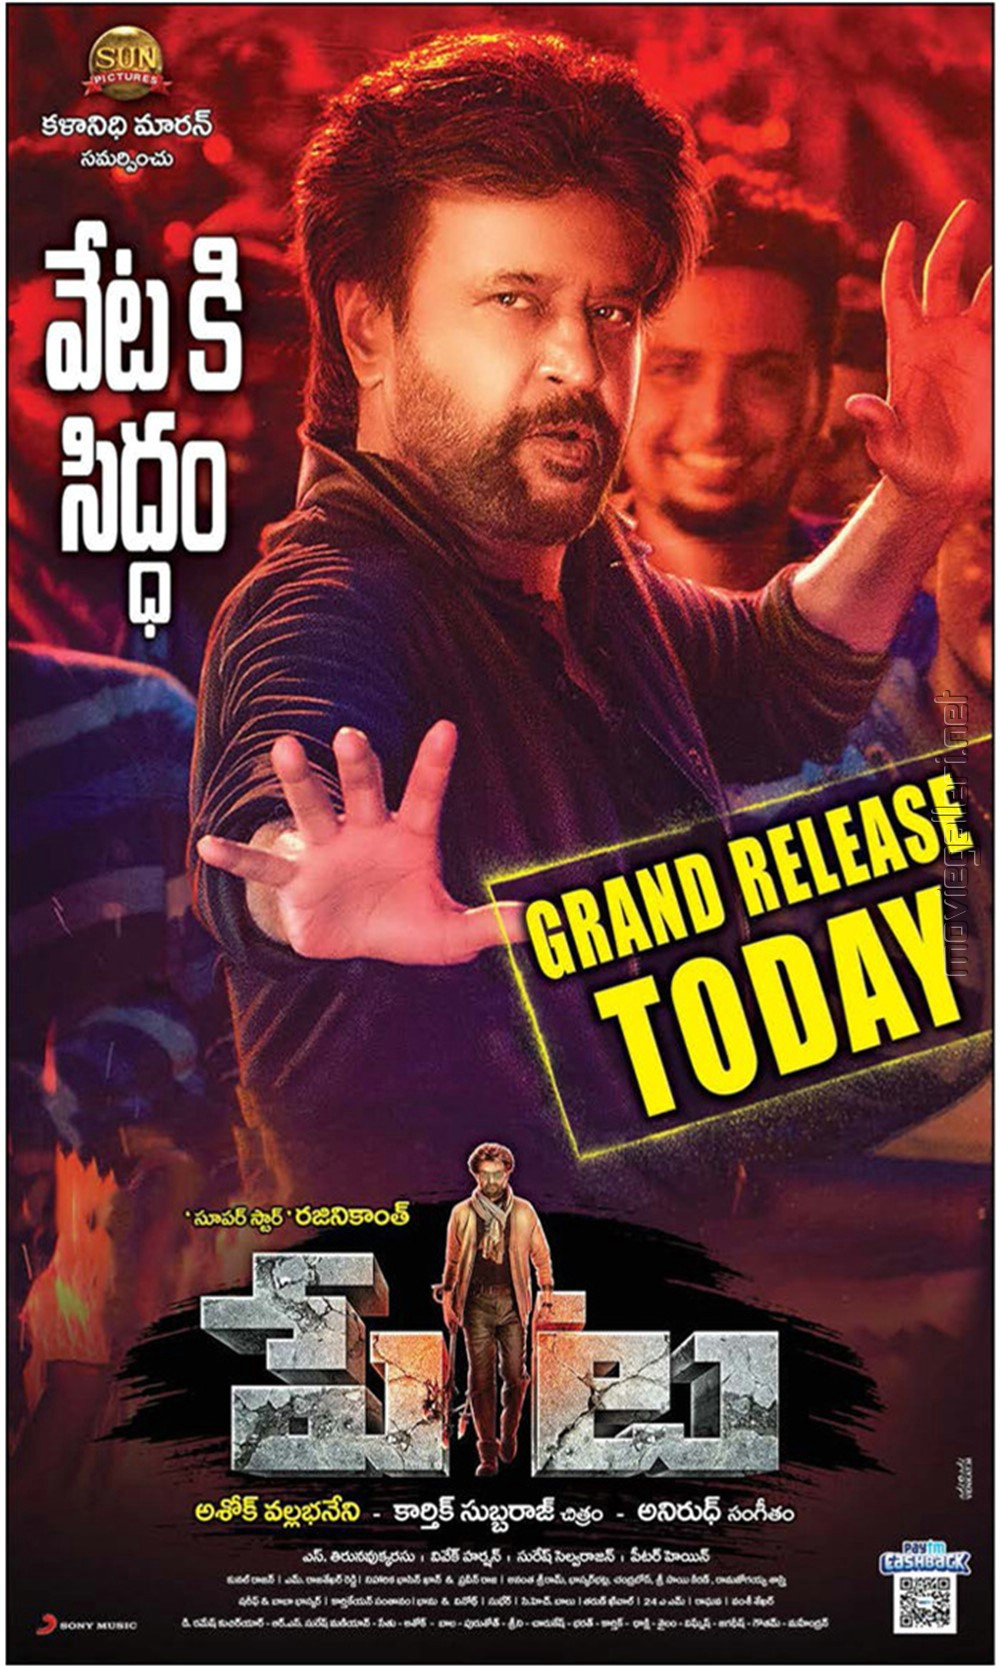 Rajinikanth Petta Movie Grand Release Today Posters HD